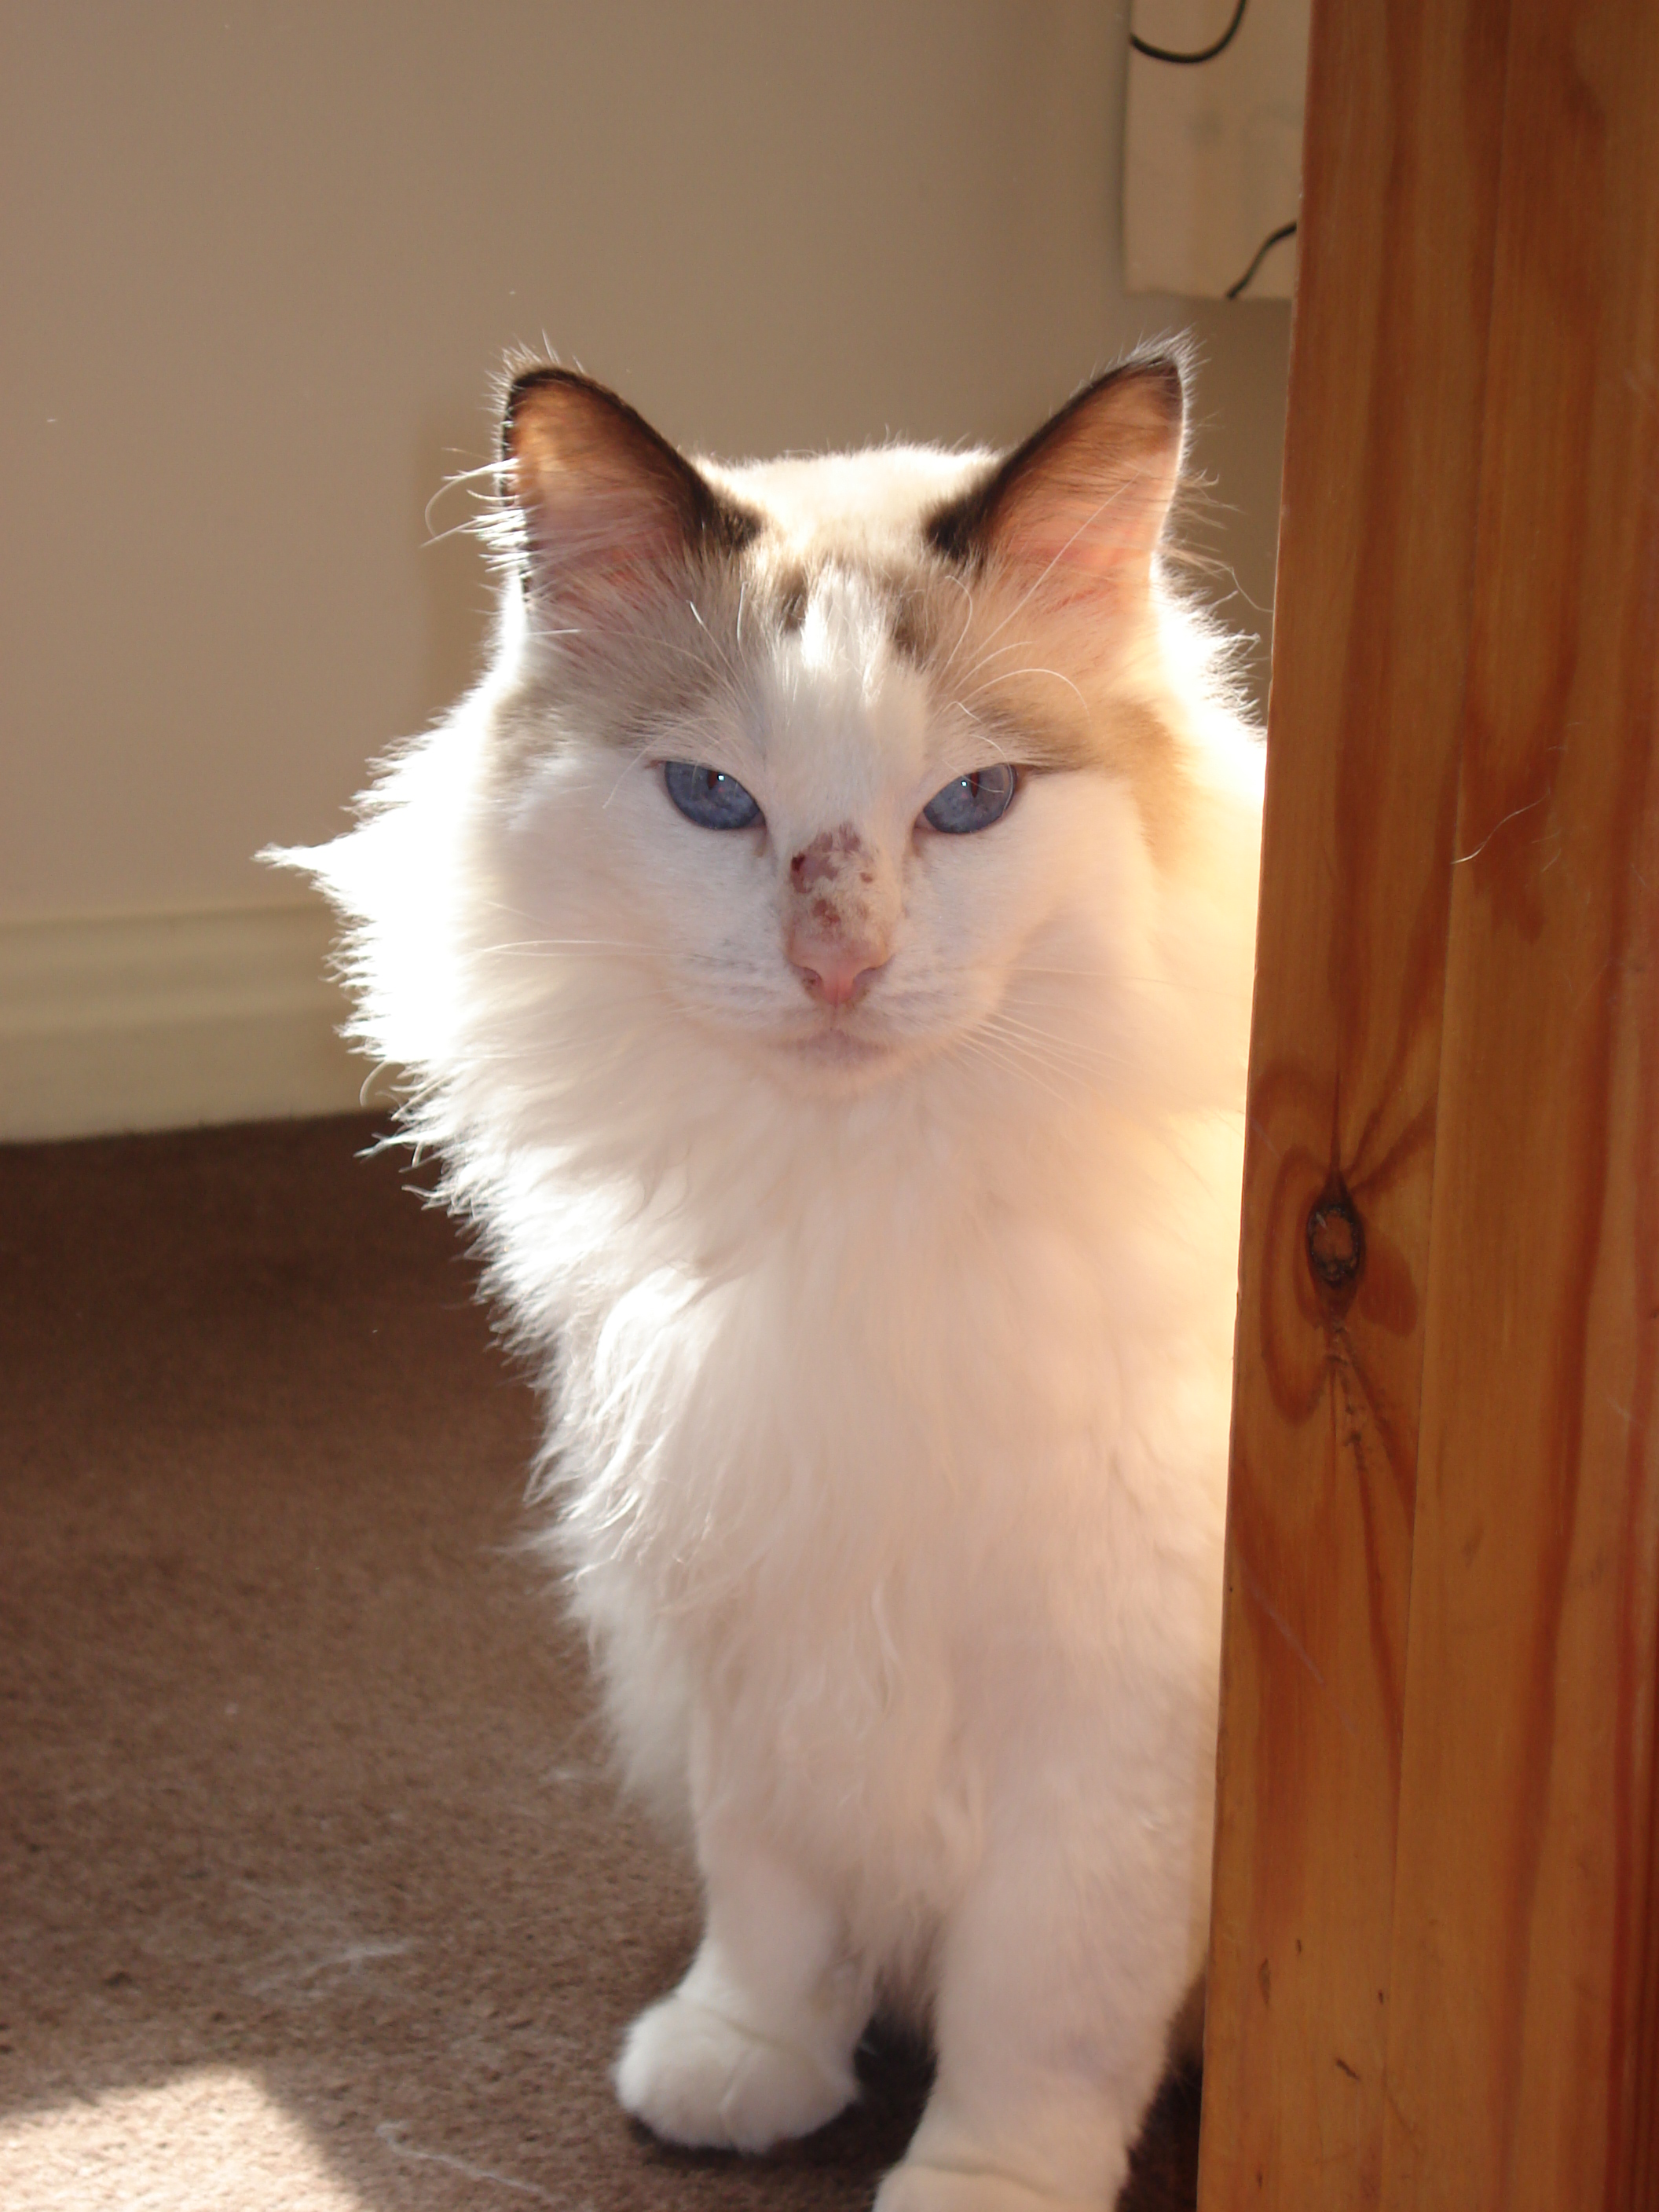 My ragdoll cat has had scabs on his nose for the last 2-3 years. Our vets have tried anti